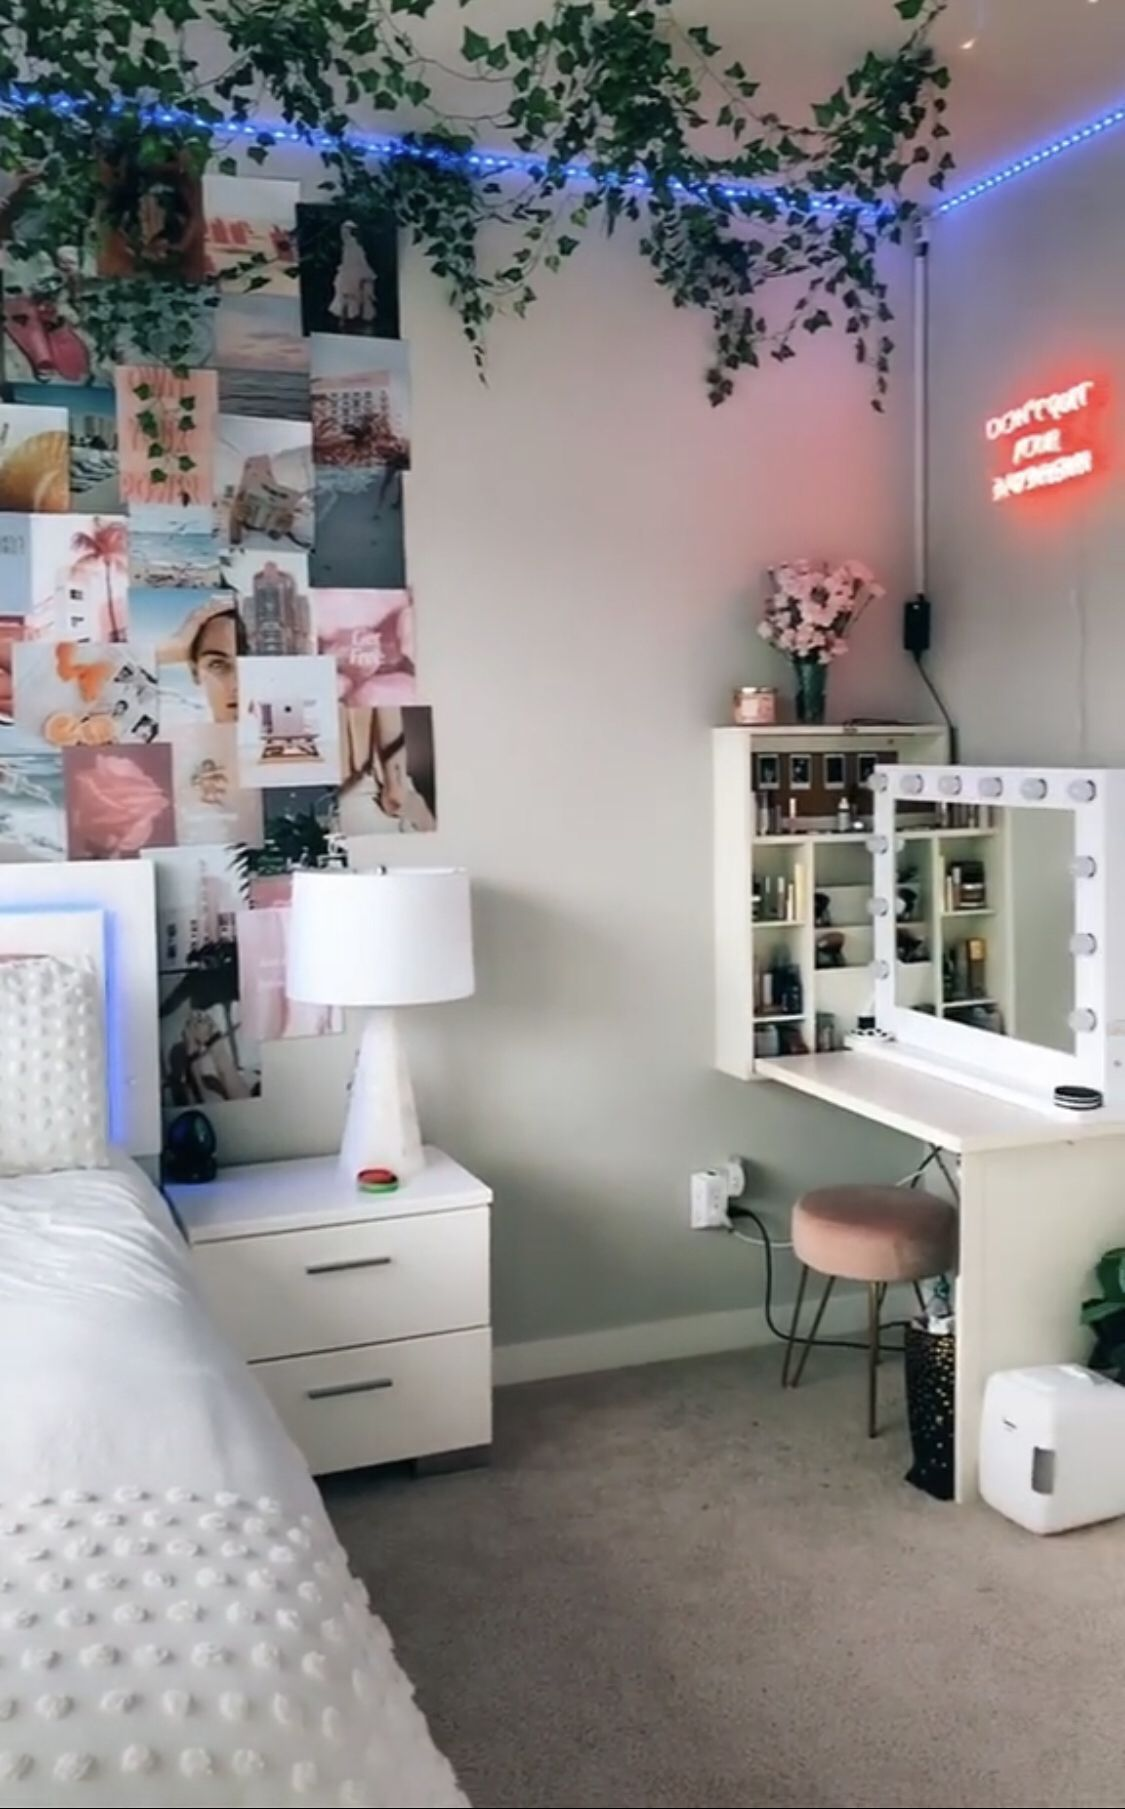 #room #roomdecor #decor #aesthetic Teen bedroom decorations Teen-bedroom-decorations Bedroom decorating ideas Blue bedrooms Furniture design Design Tiny house design Ceiling design Tiny house kitchens Small balconies Space saving Murphy beds Compact kitchen Small home offices